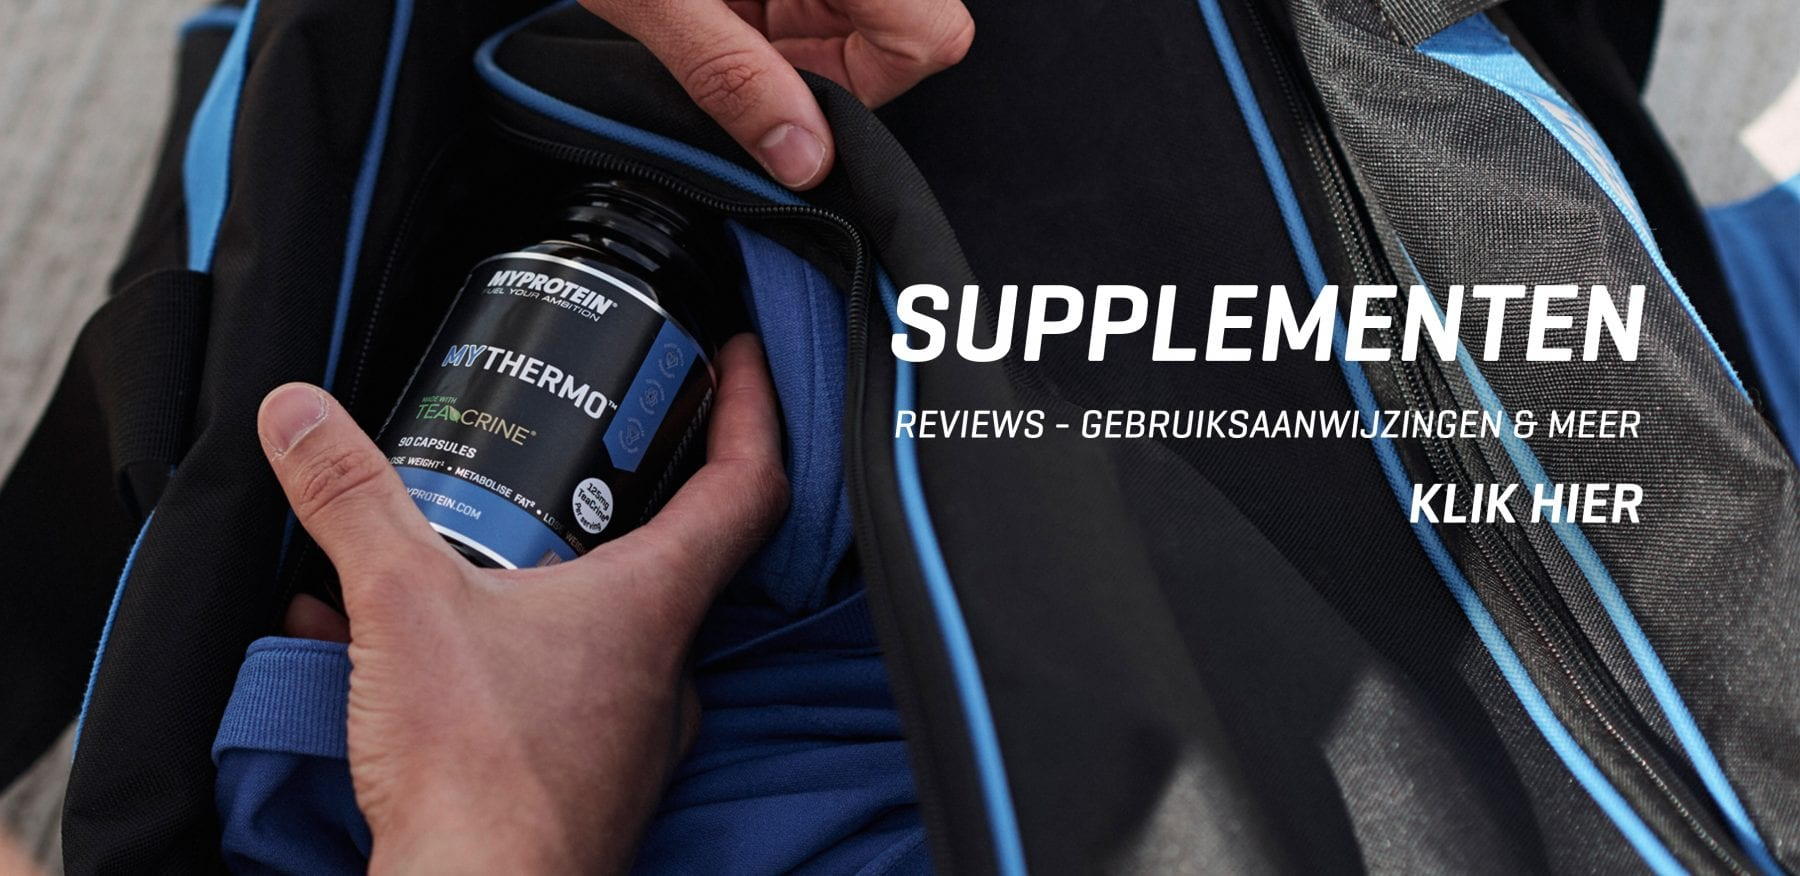 Supplementen reviews artikelen myprotein